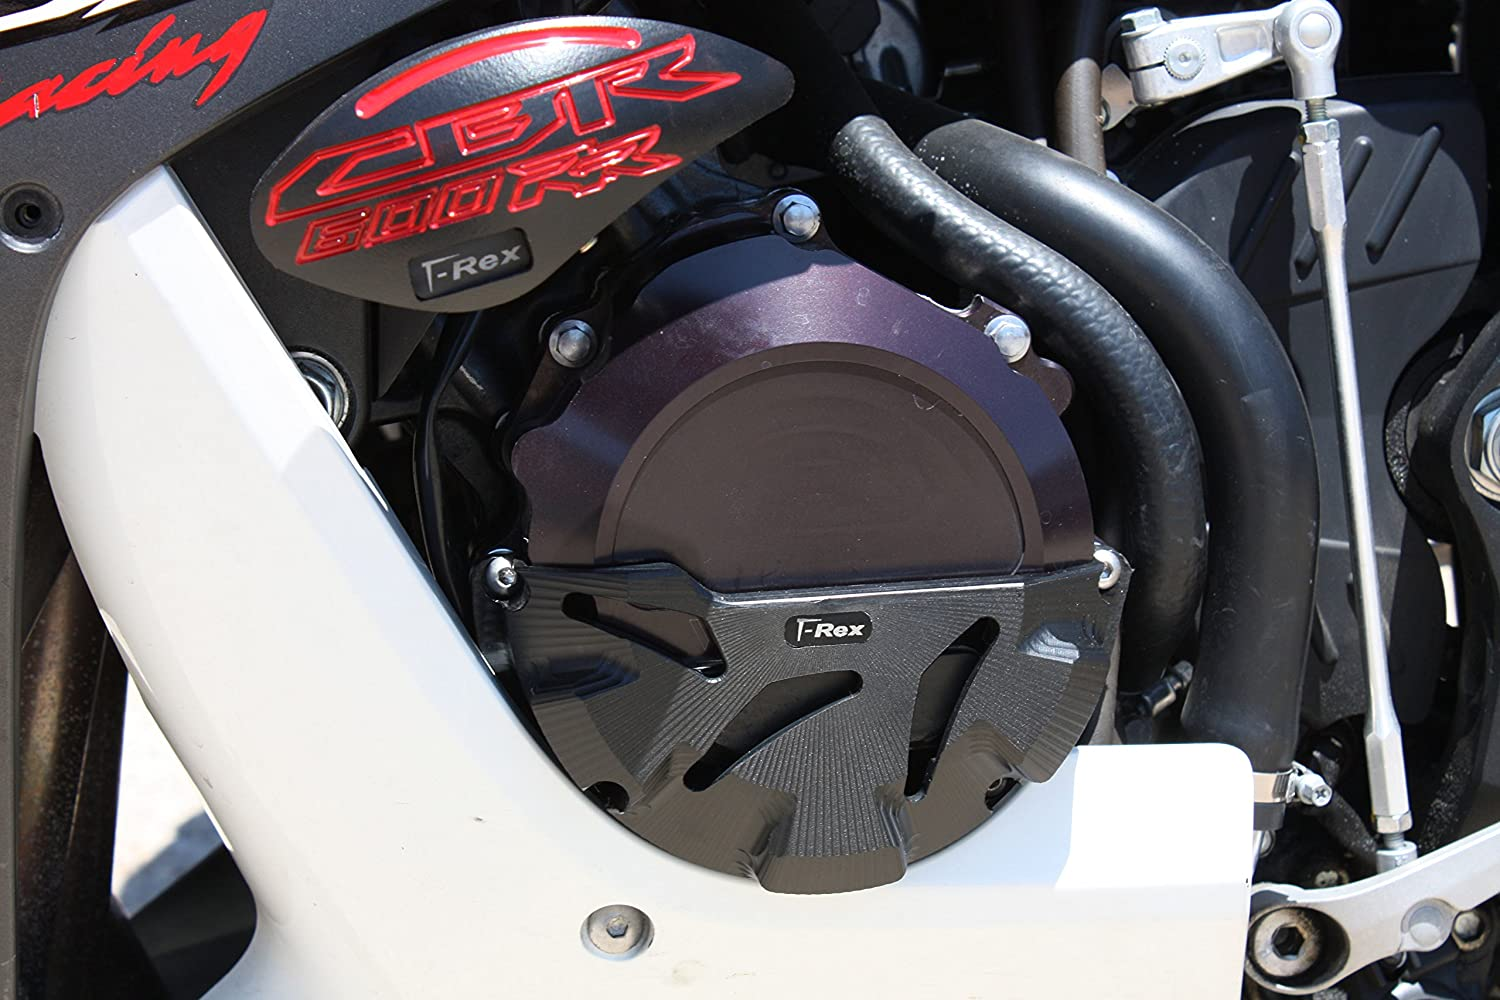 T-Rex Racing Engine Case Covers for Honda 2007-2008 CBR600RR